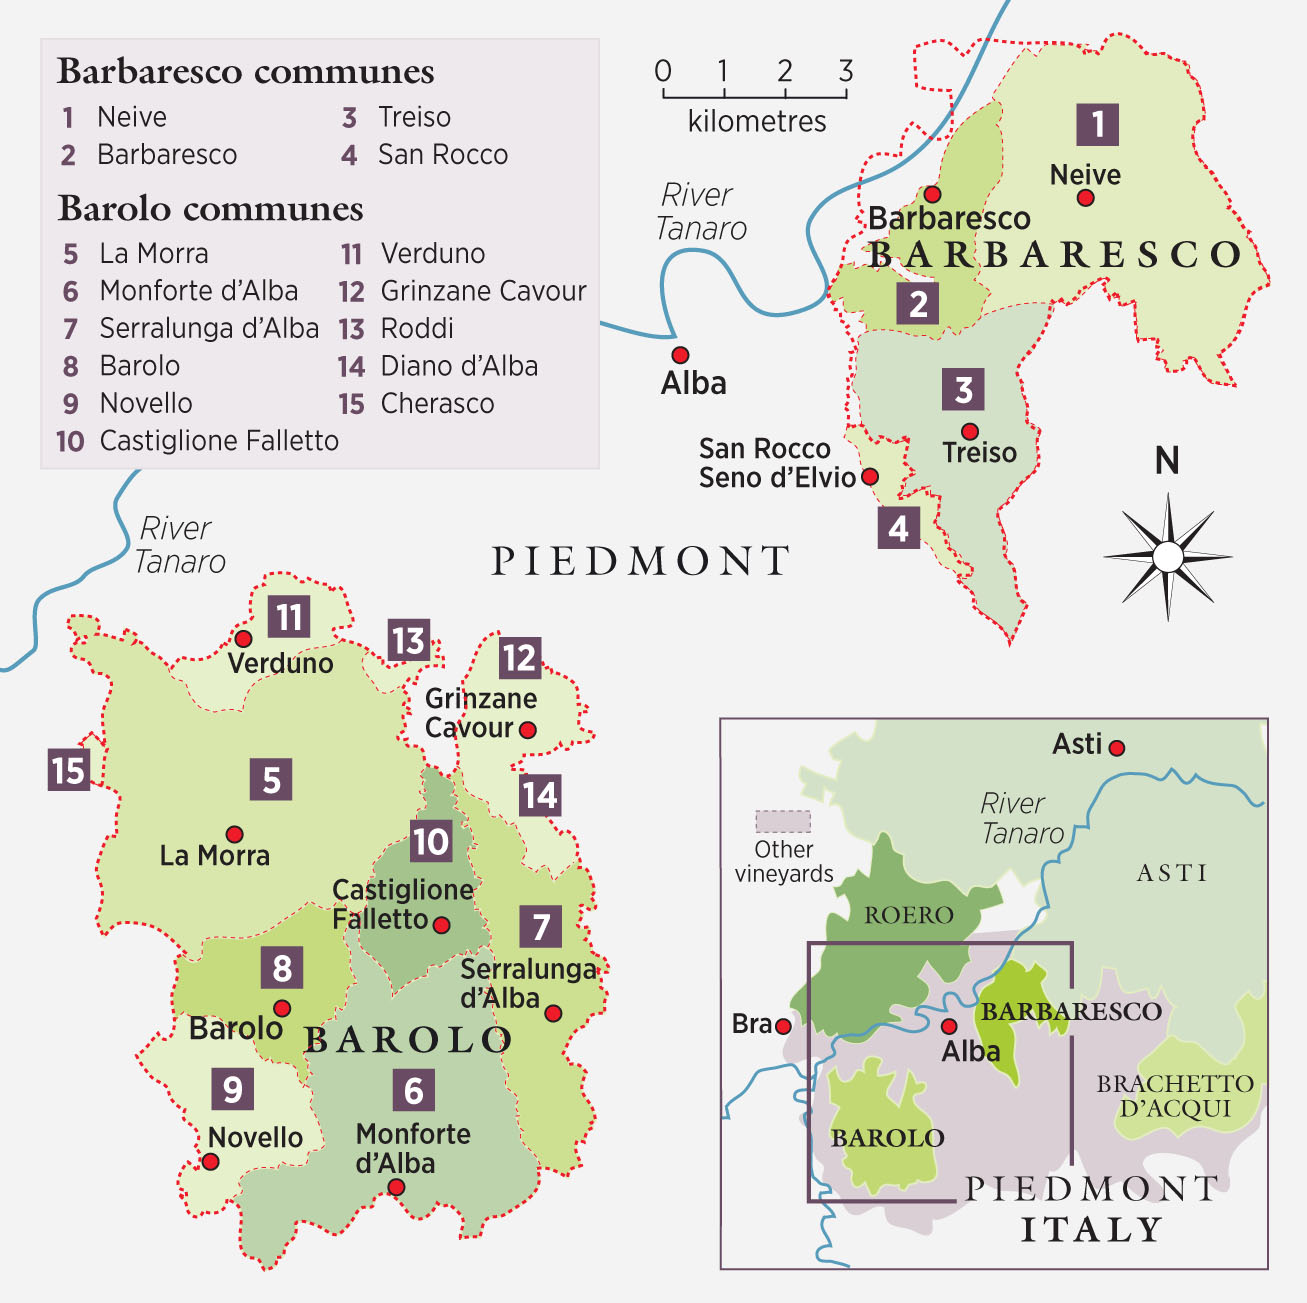 Barolo and Barbaresco map